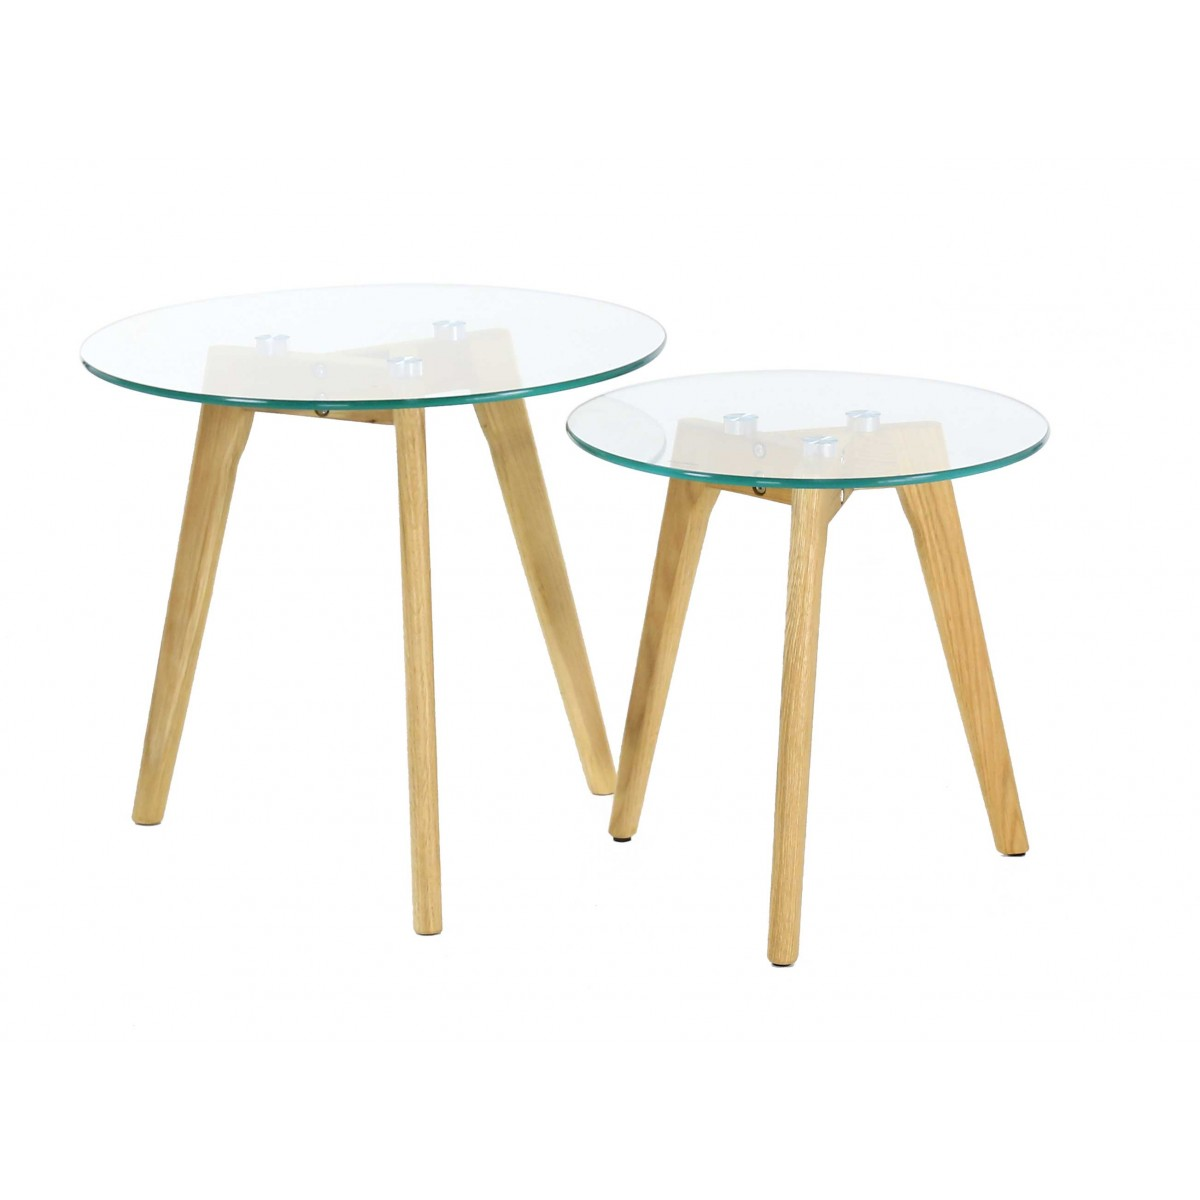 Table basse gigogne en verre design scandie mooviin - Table basse gigogne verre ...